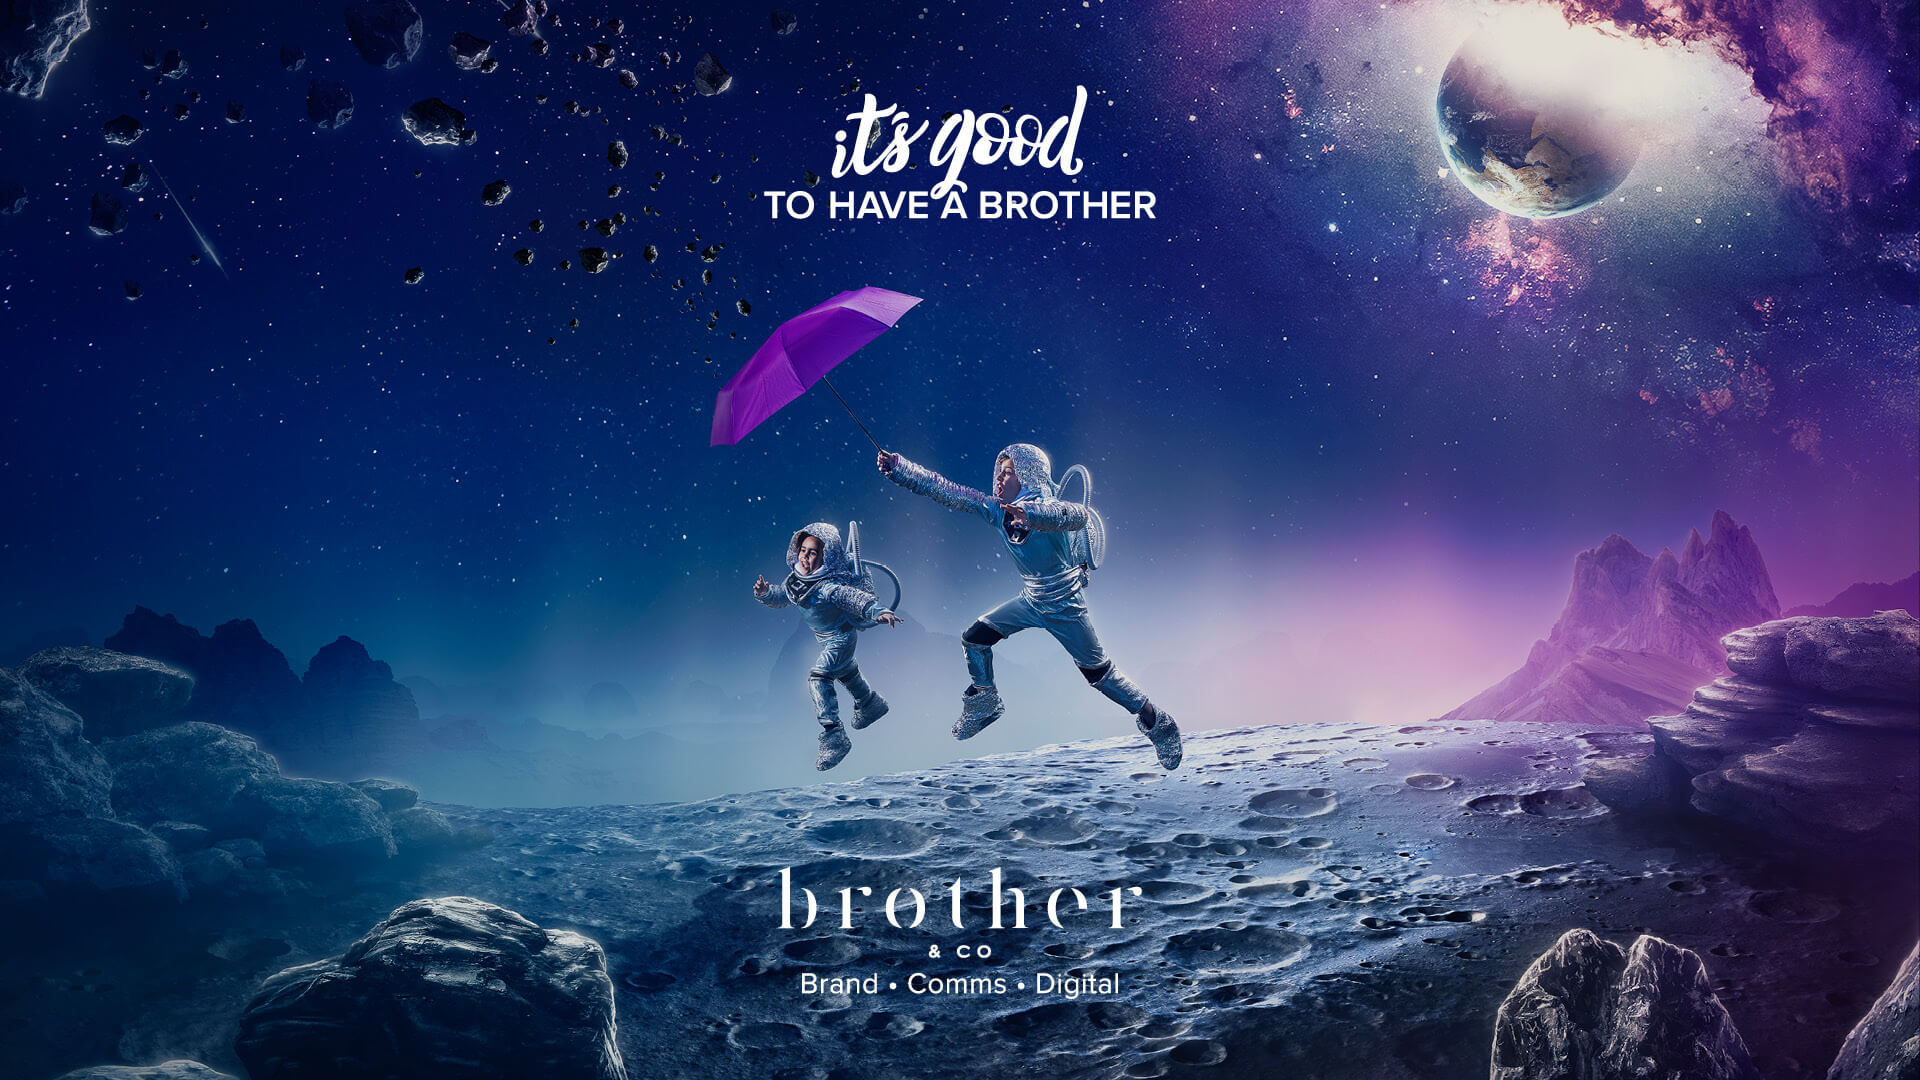 It's good to have a brother - Banner 3